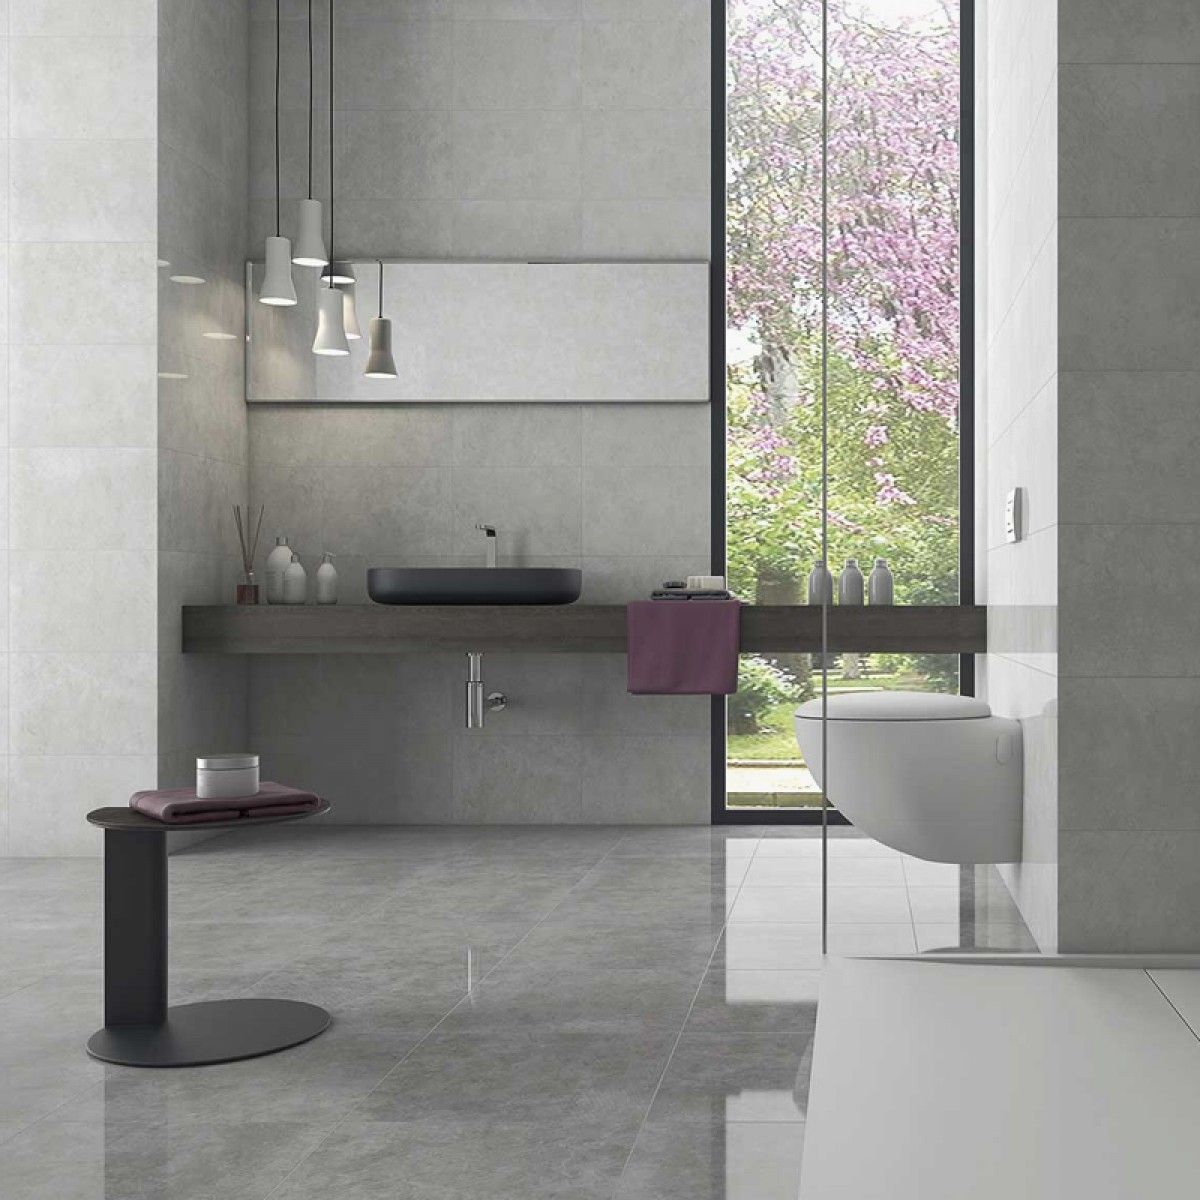 Cooper gris crown tiles bathroom tiles pinterest tiles crown tiles online shop stocks large ranges of tiles tiles for walls floors whole rooms bathrooms kitchens and more dailygadgetfo Gallery